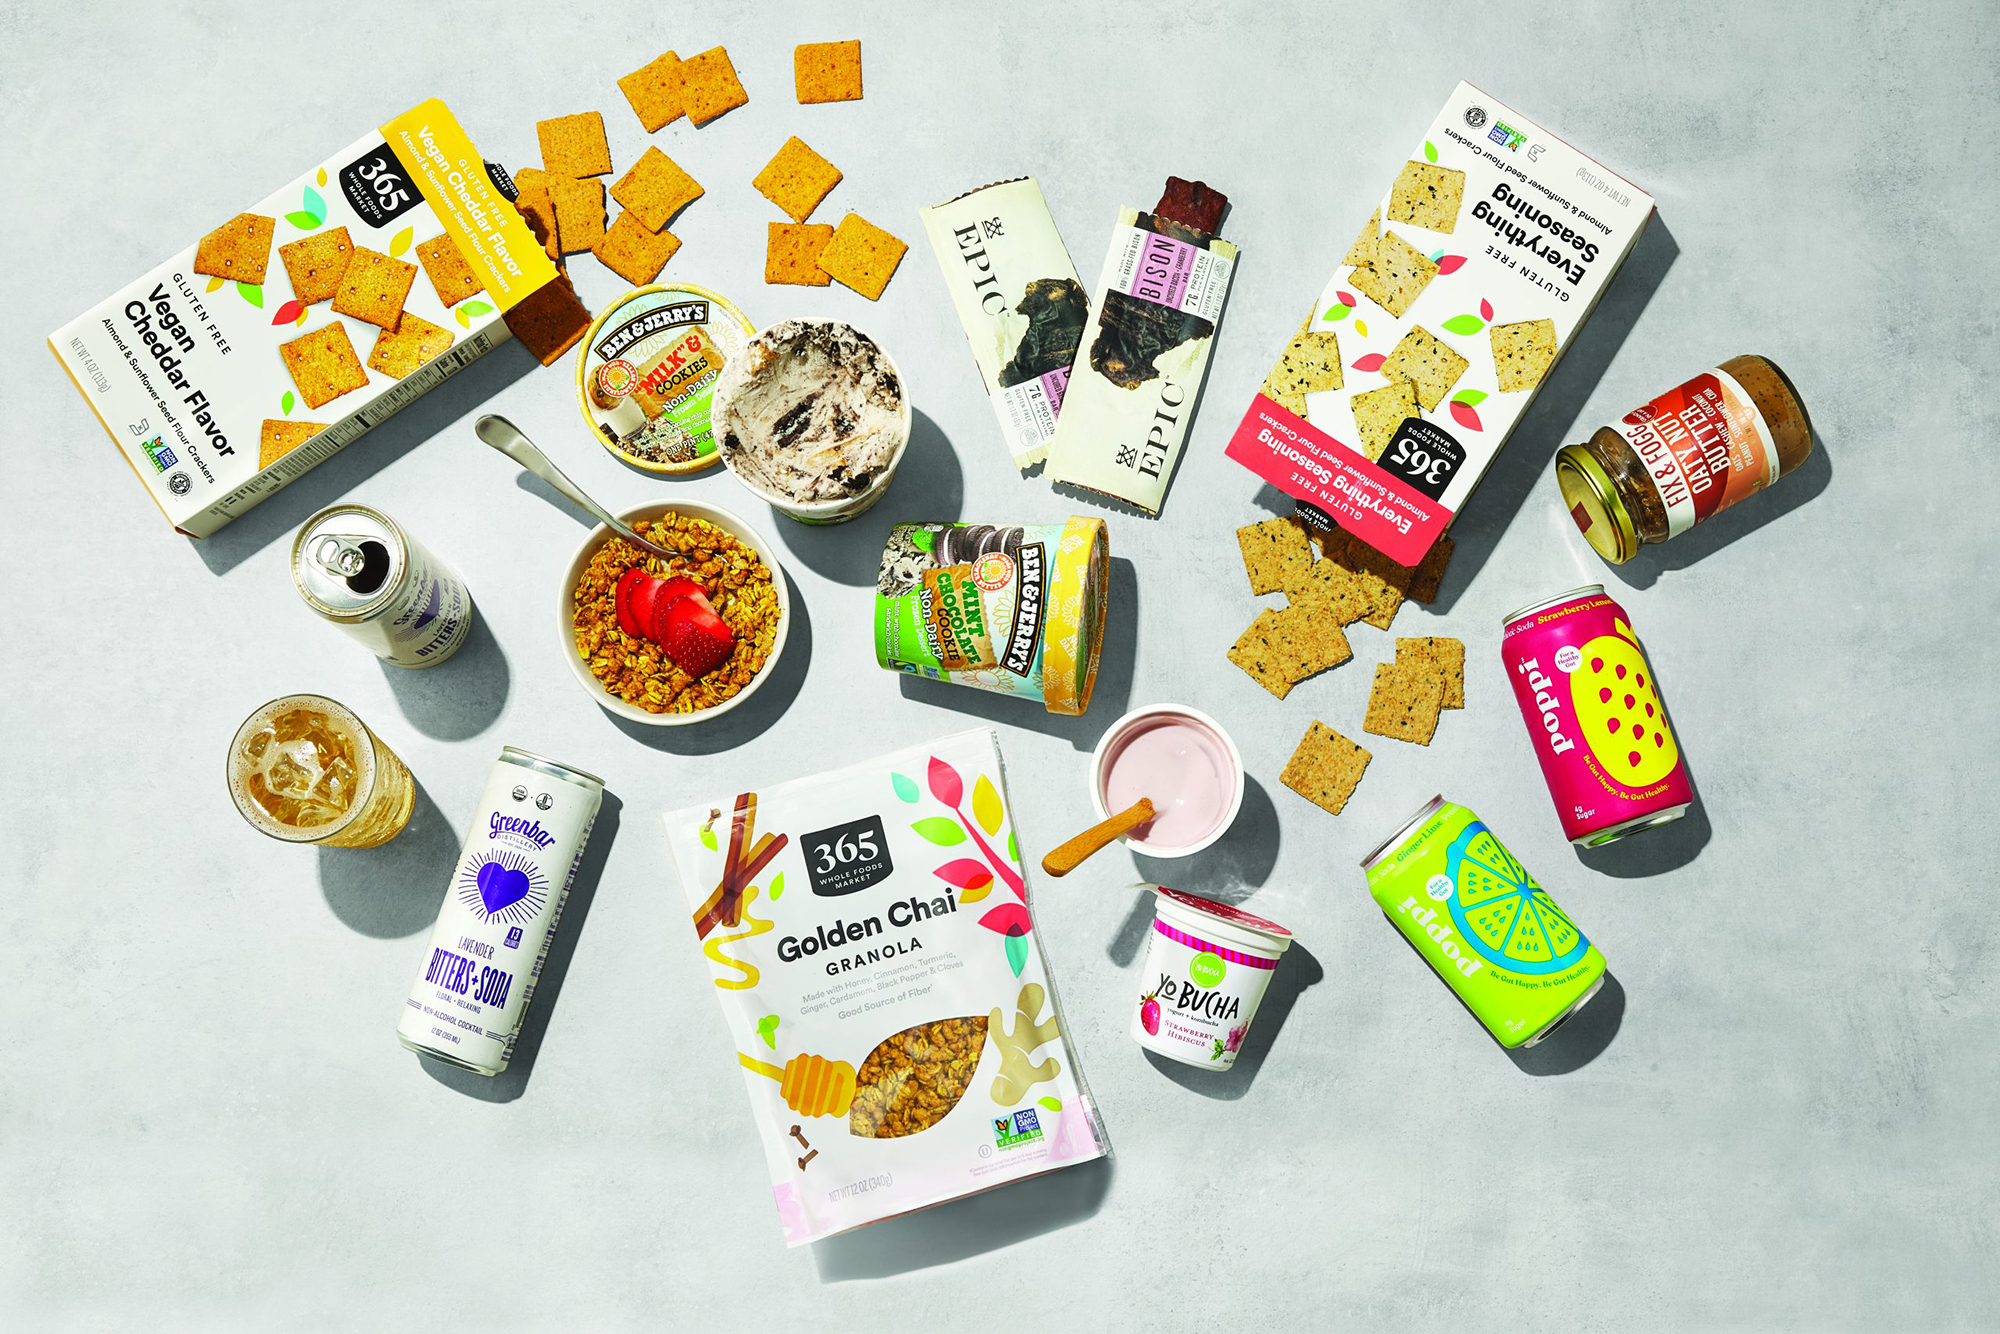 A variety of snacks from Whole Foods on a grey surface